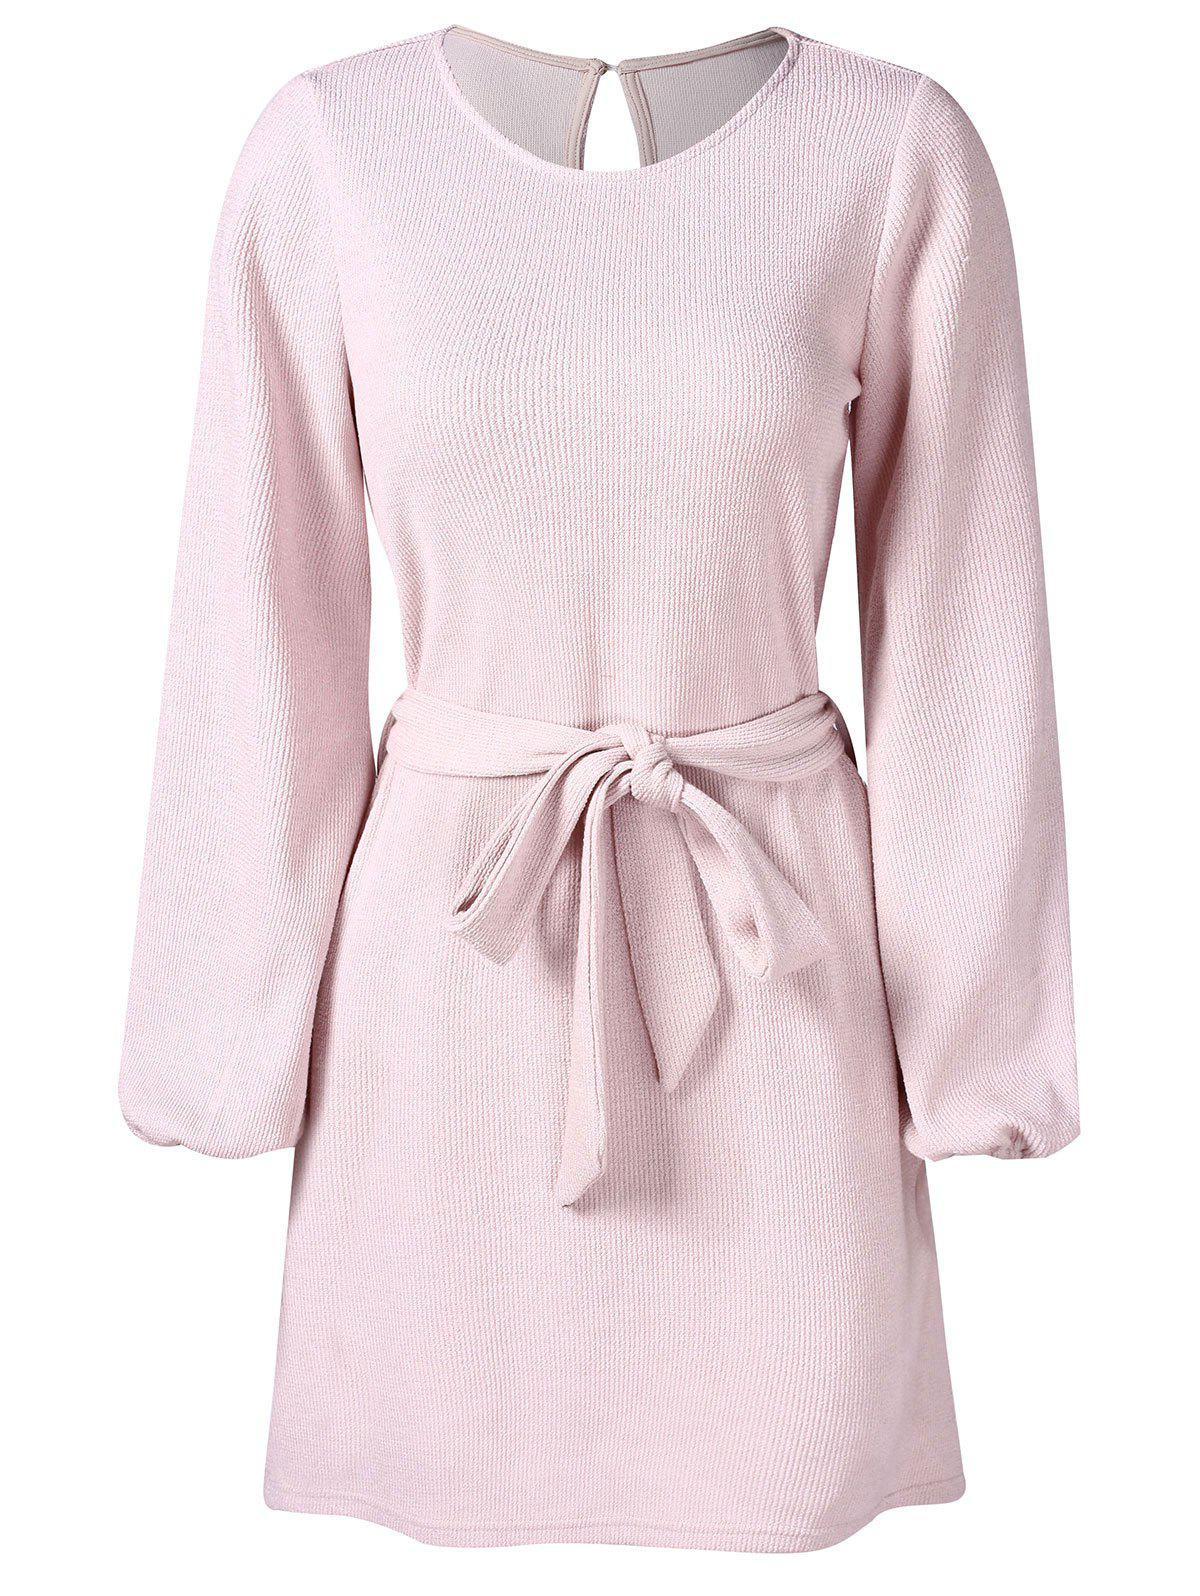 Long Sleeve Belted Dress - LIGHT PINK M